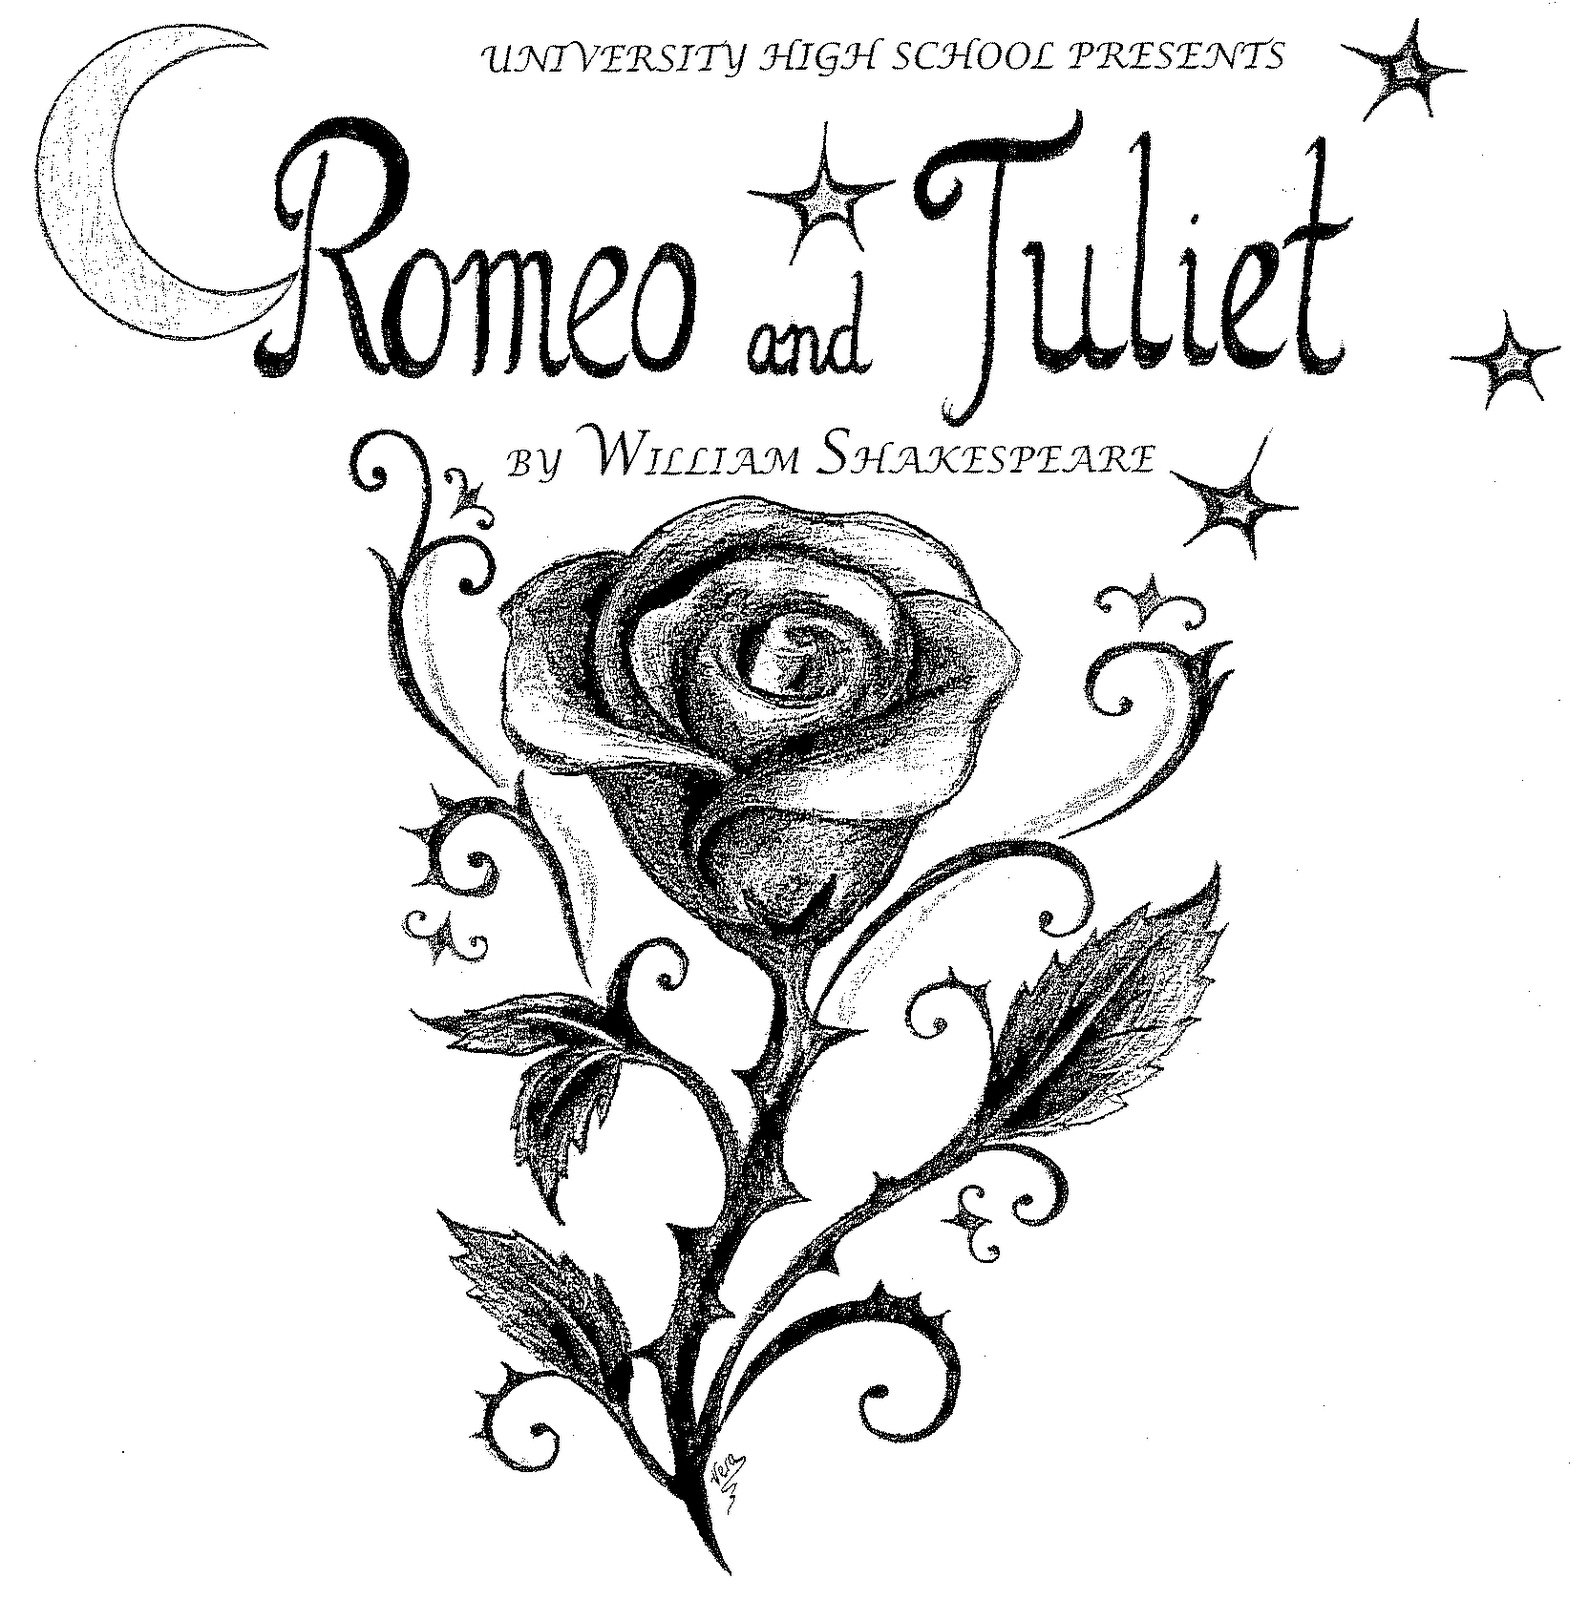 an analysisof the forbidden love of romeo and juliet a play by william shakespeare Free romeo and juliet theme love and hate papers, essays summary of william shakespeare's romeo and juliet - summary of william shakespeare's romeo and juliet paris asks capulet for his tragically, because of their forbidden love romeo and juliet take their lives so they can be.